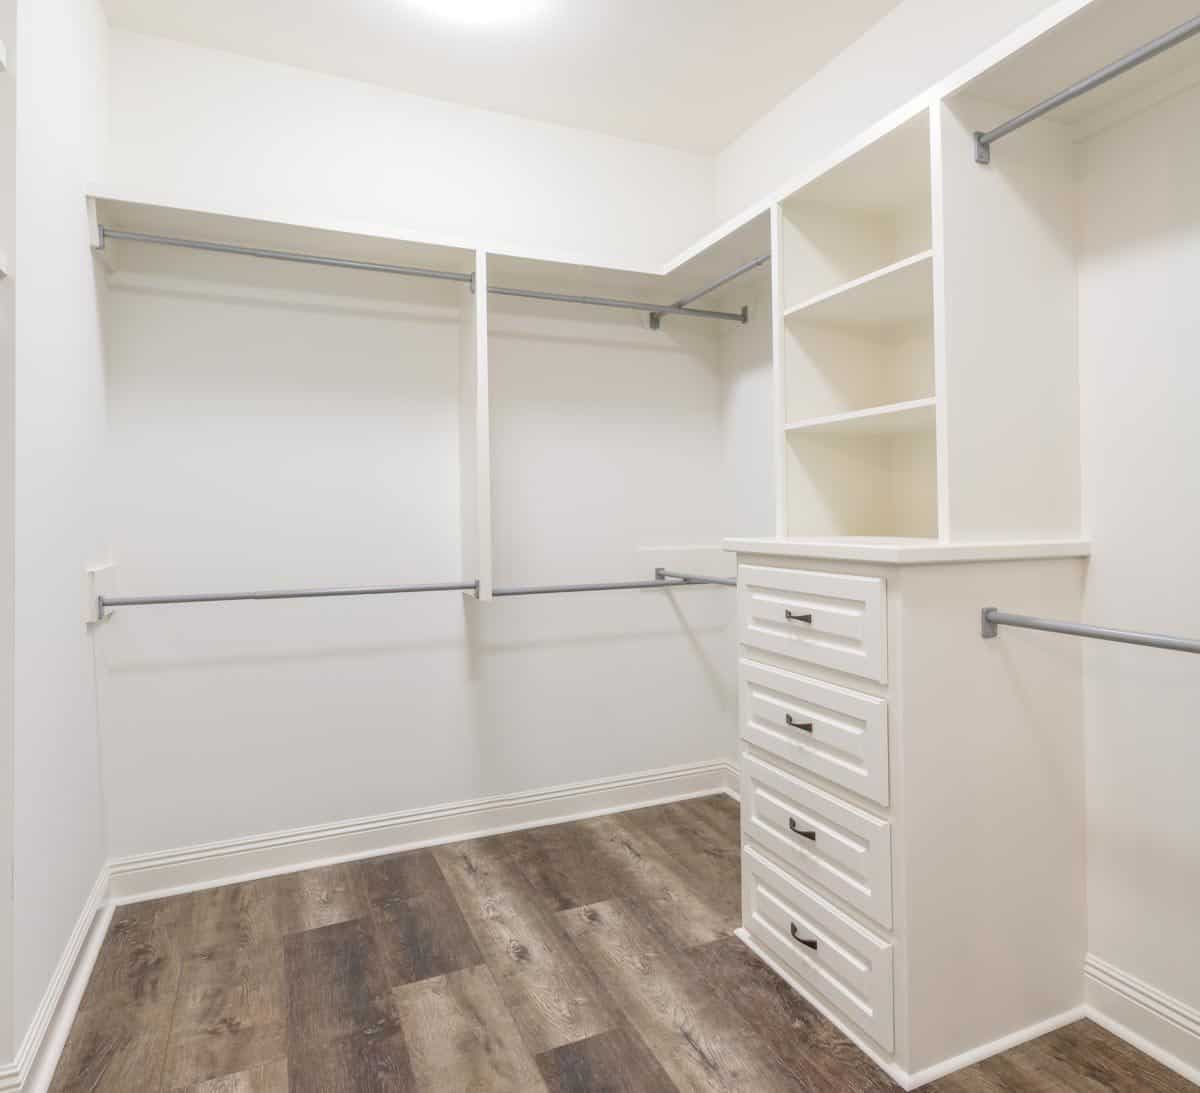 Walk-in closet with hardwood flooring and built-in drawers and shelves blending in with the white walls.